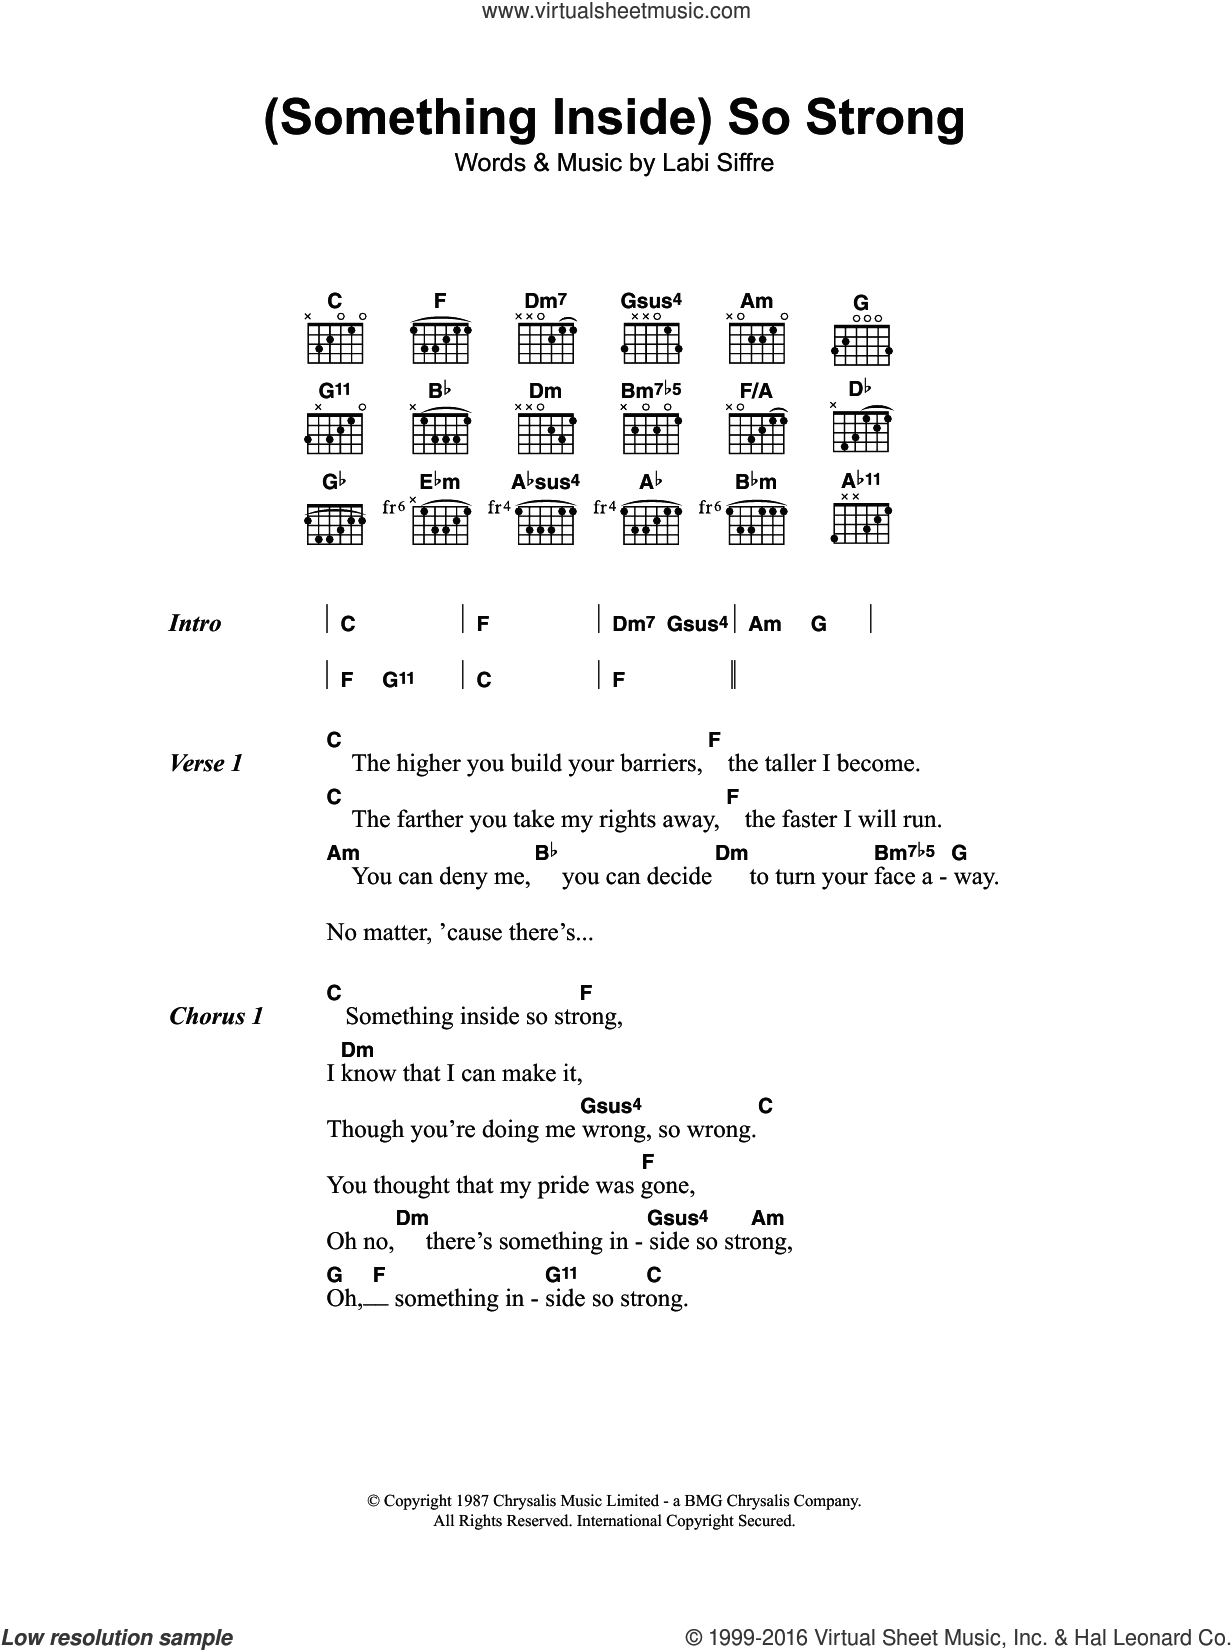 (Something Inside) So Strong sheet music for guitar (chords) by Labi Siffre. Score Image Preview.